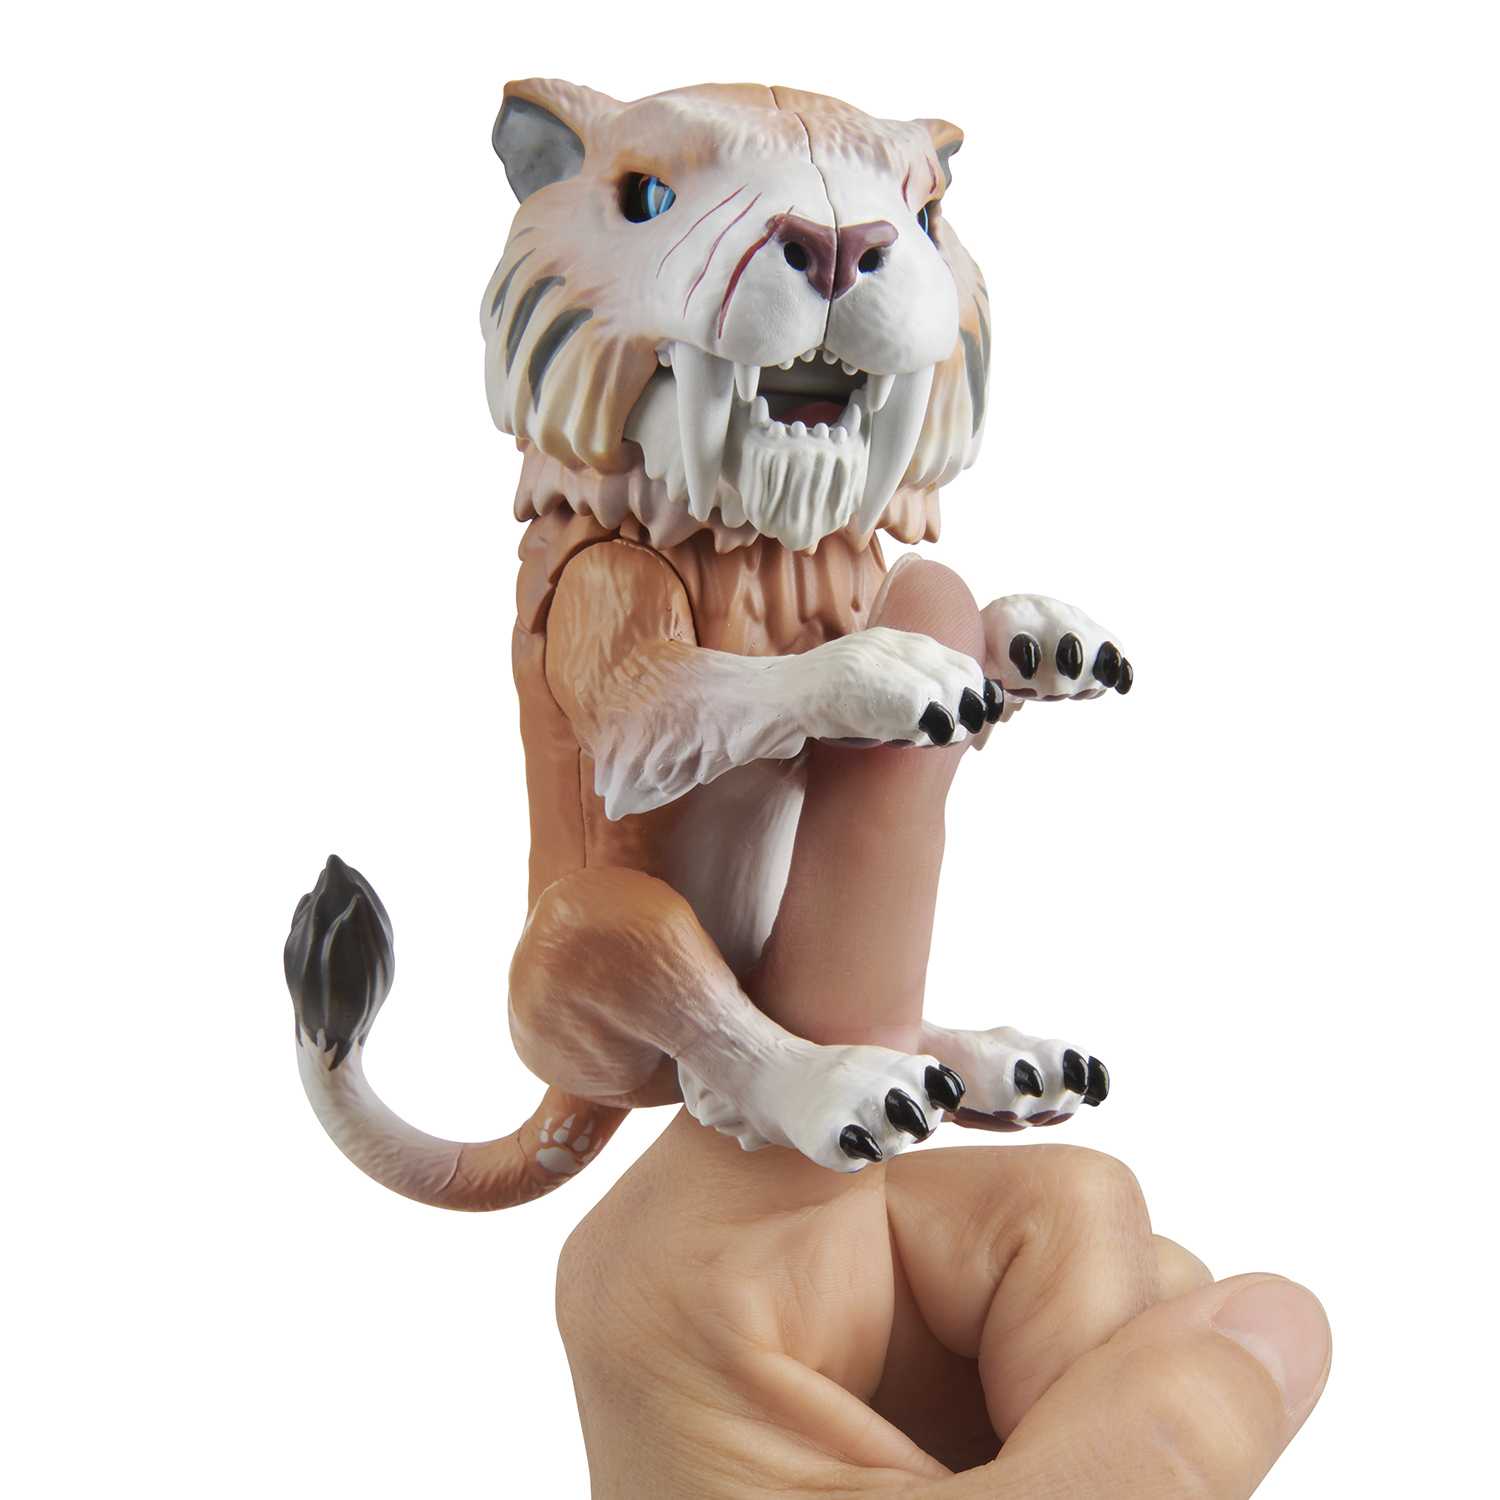 Untamed Sabre Tooth Tiger by Fingerlings – Bonesaw (Bronze) – Interactive Collectible Toy – By WowWee